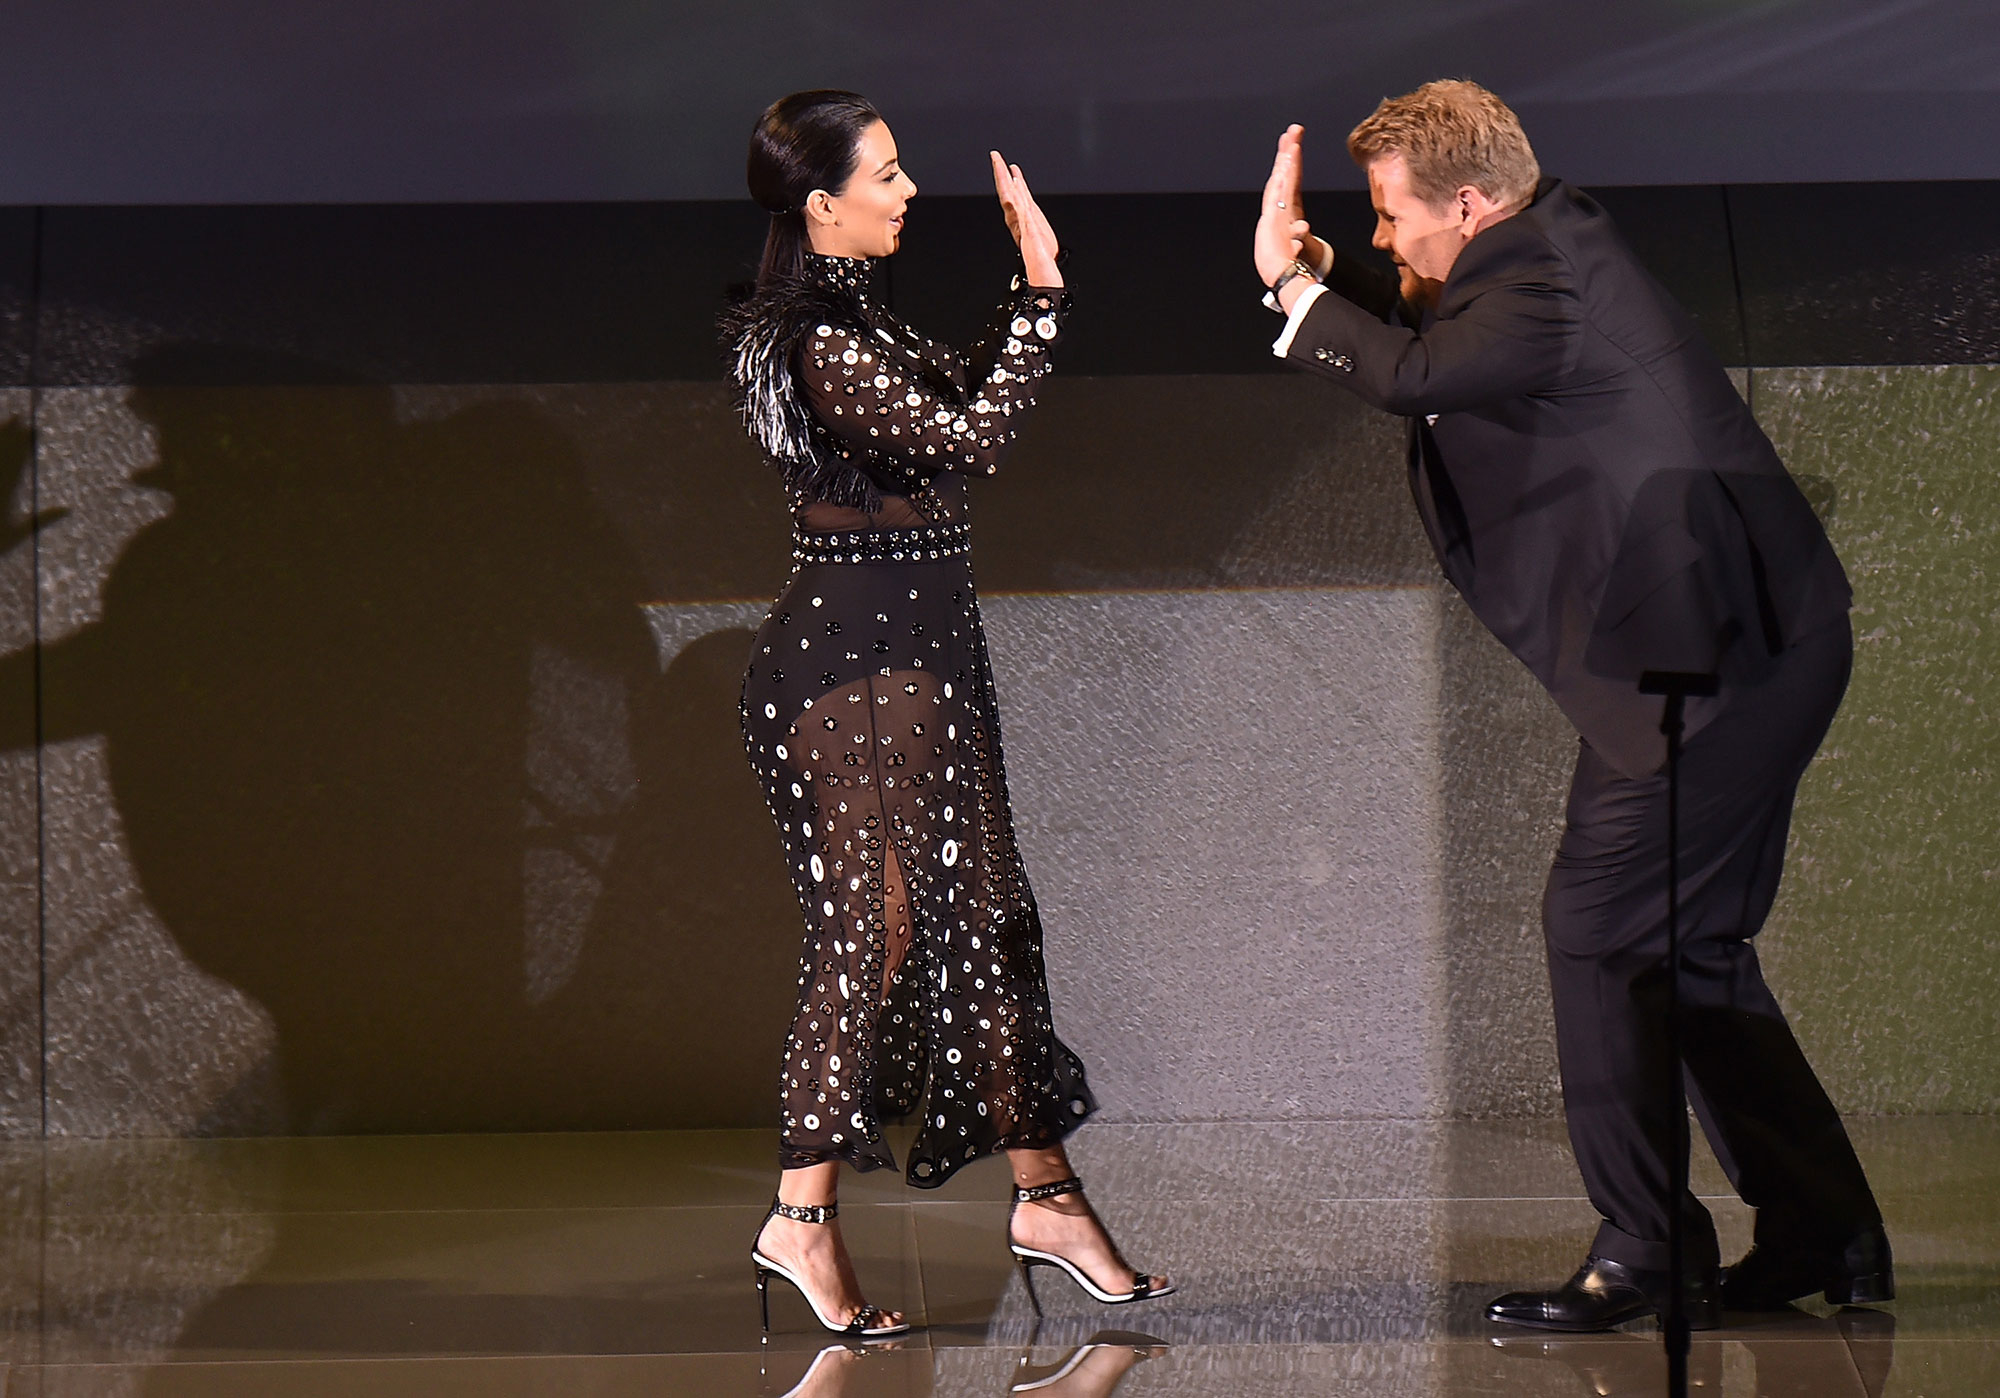 Kim Kardashian and actor James Corden greet onstage at the 2015 CFDA Fashion Awards at Alice Tully Hall at Lincoln Center on June 1, 2015, in New York City